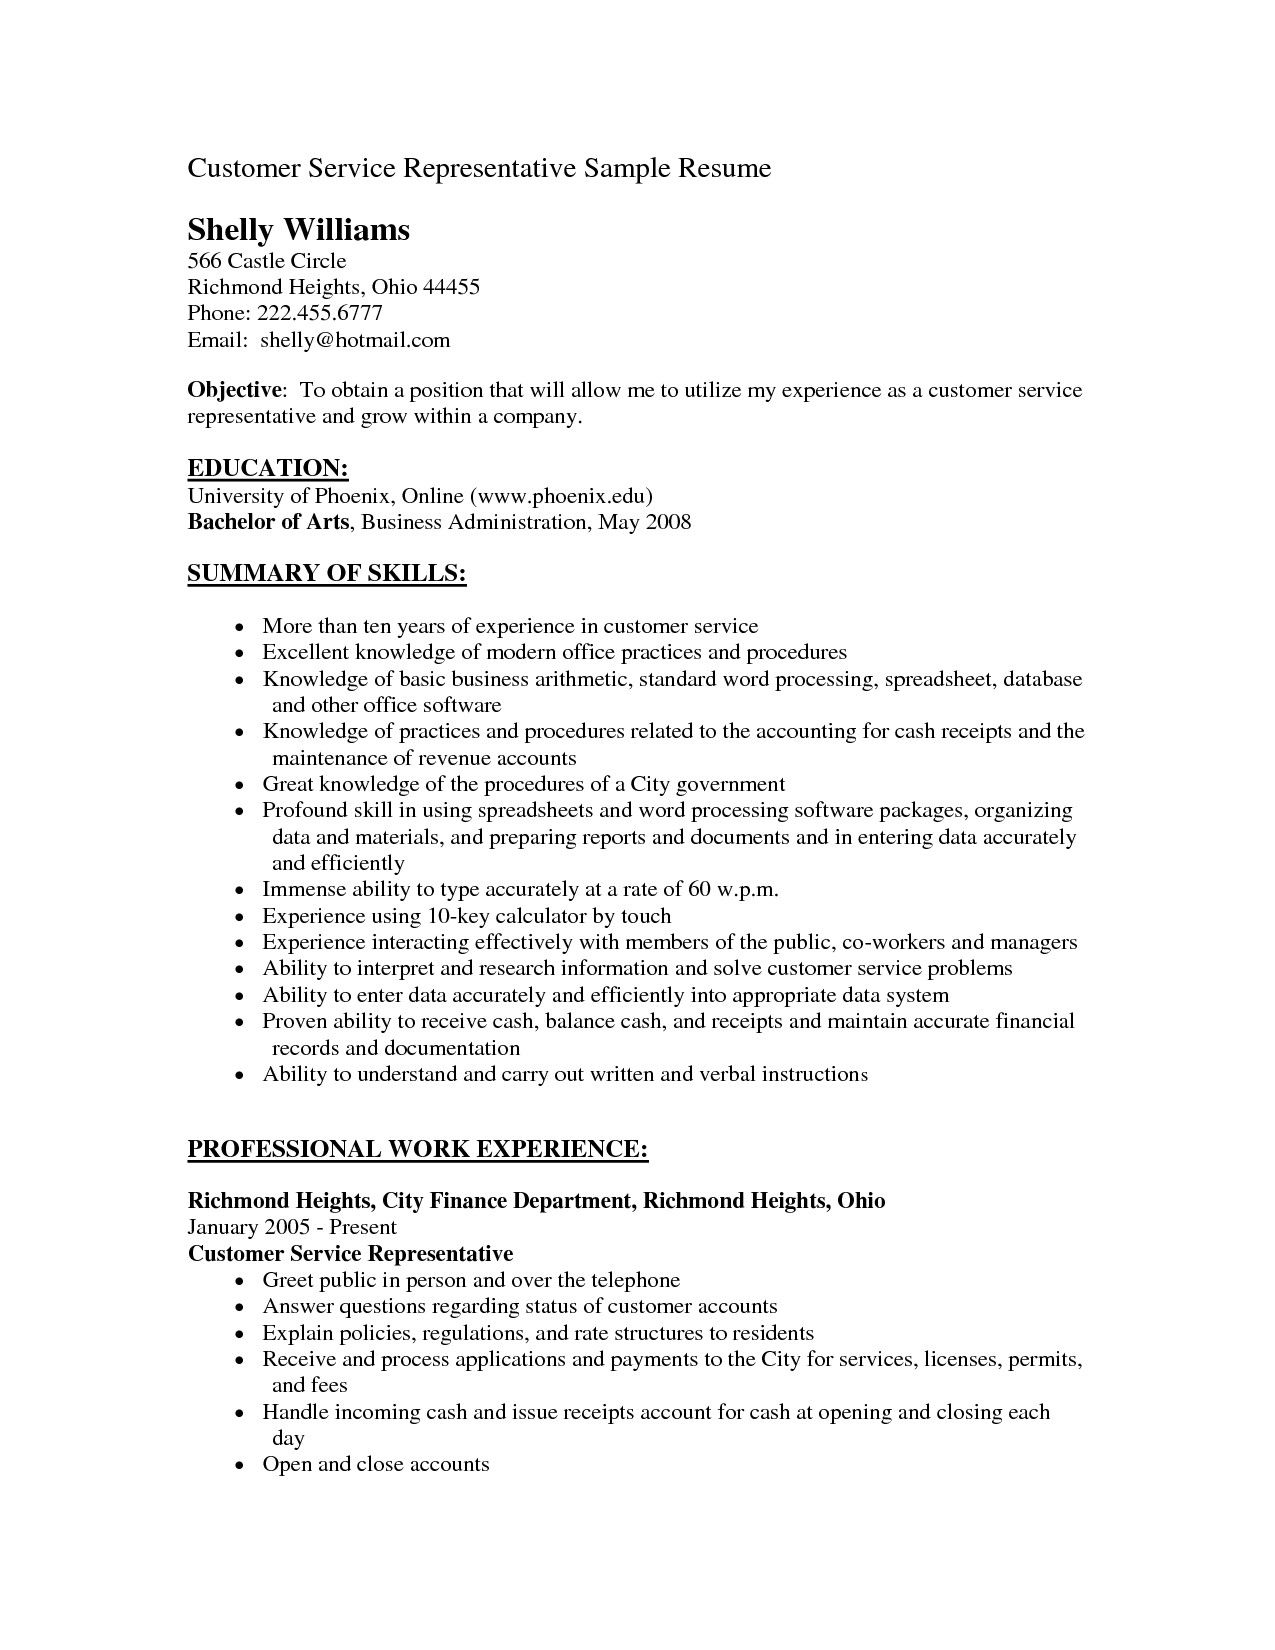 Example Resume Objectives For Customer Service